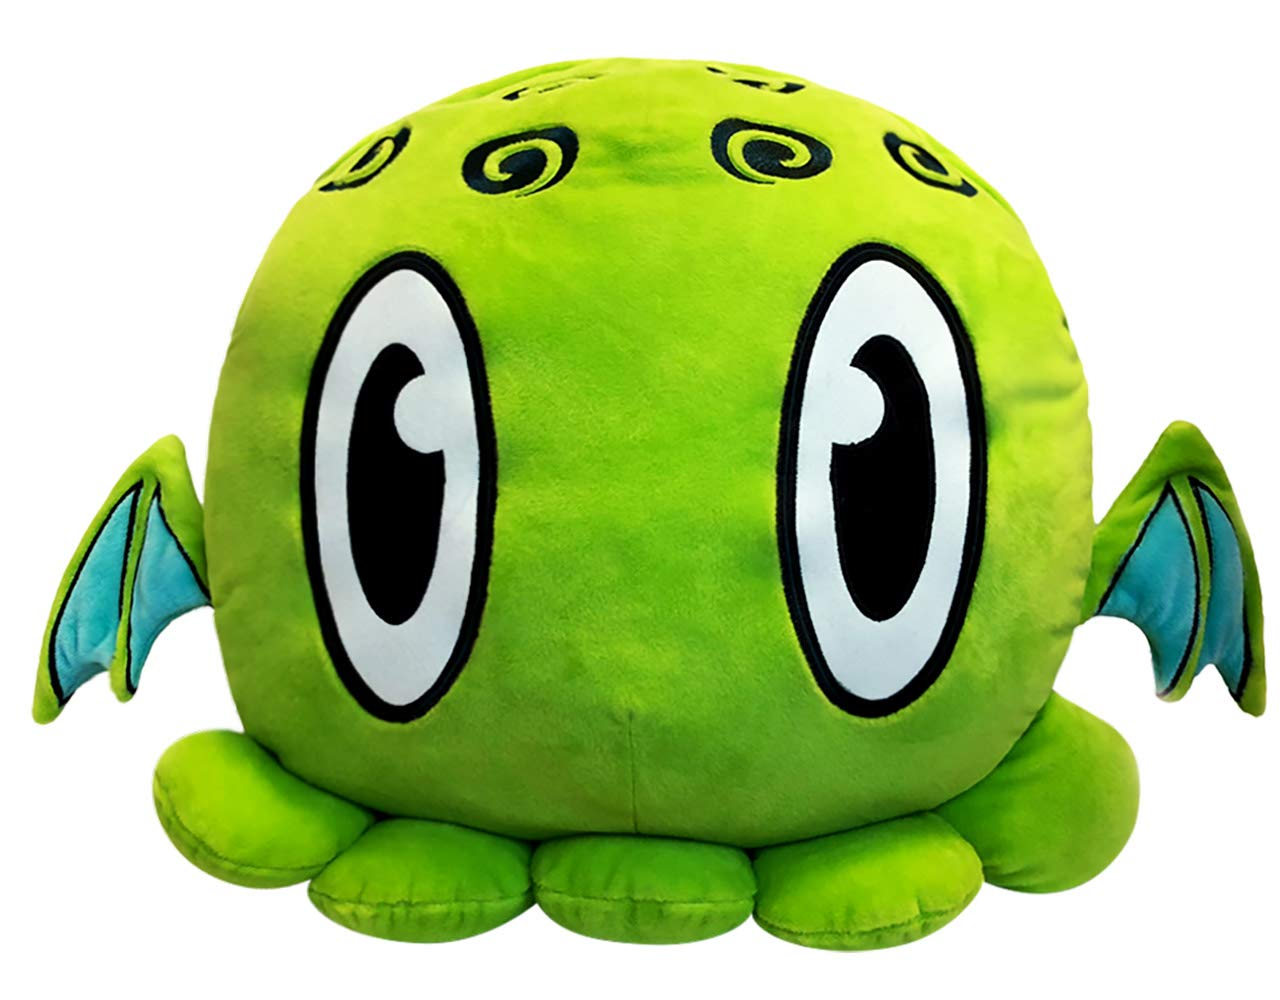 C is for Cthulhu Blanket-Stuffed Plush Pillow